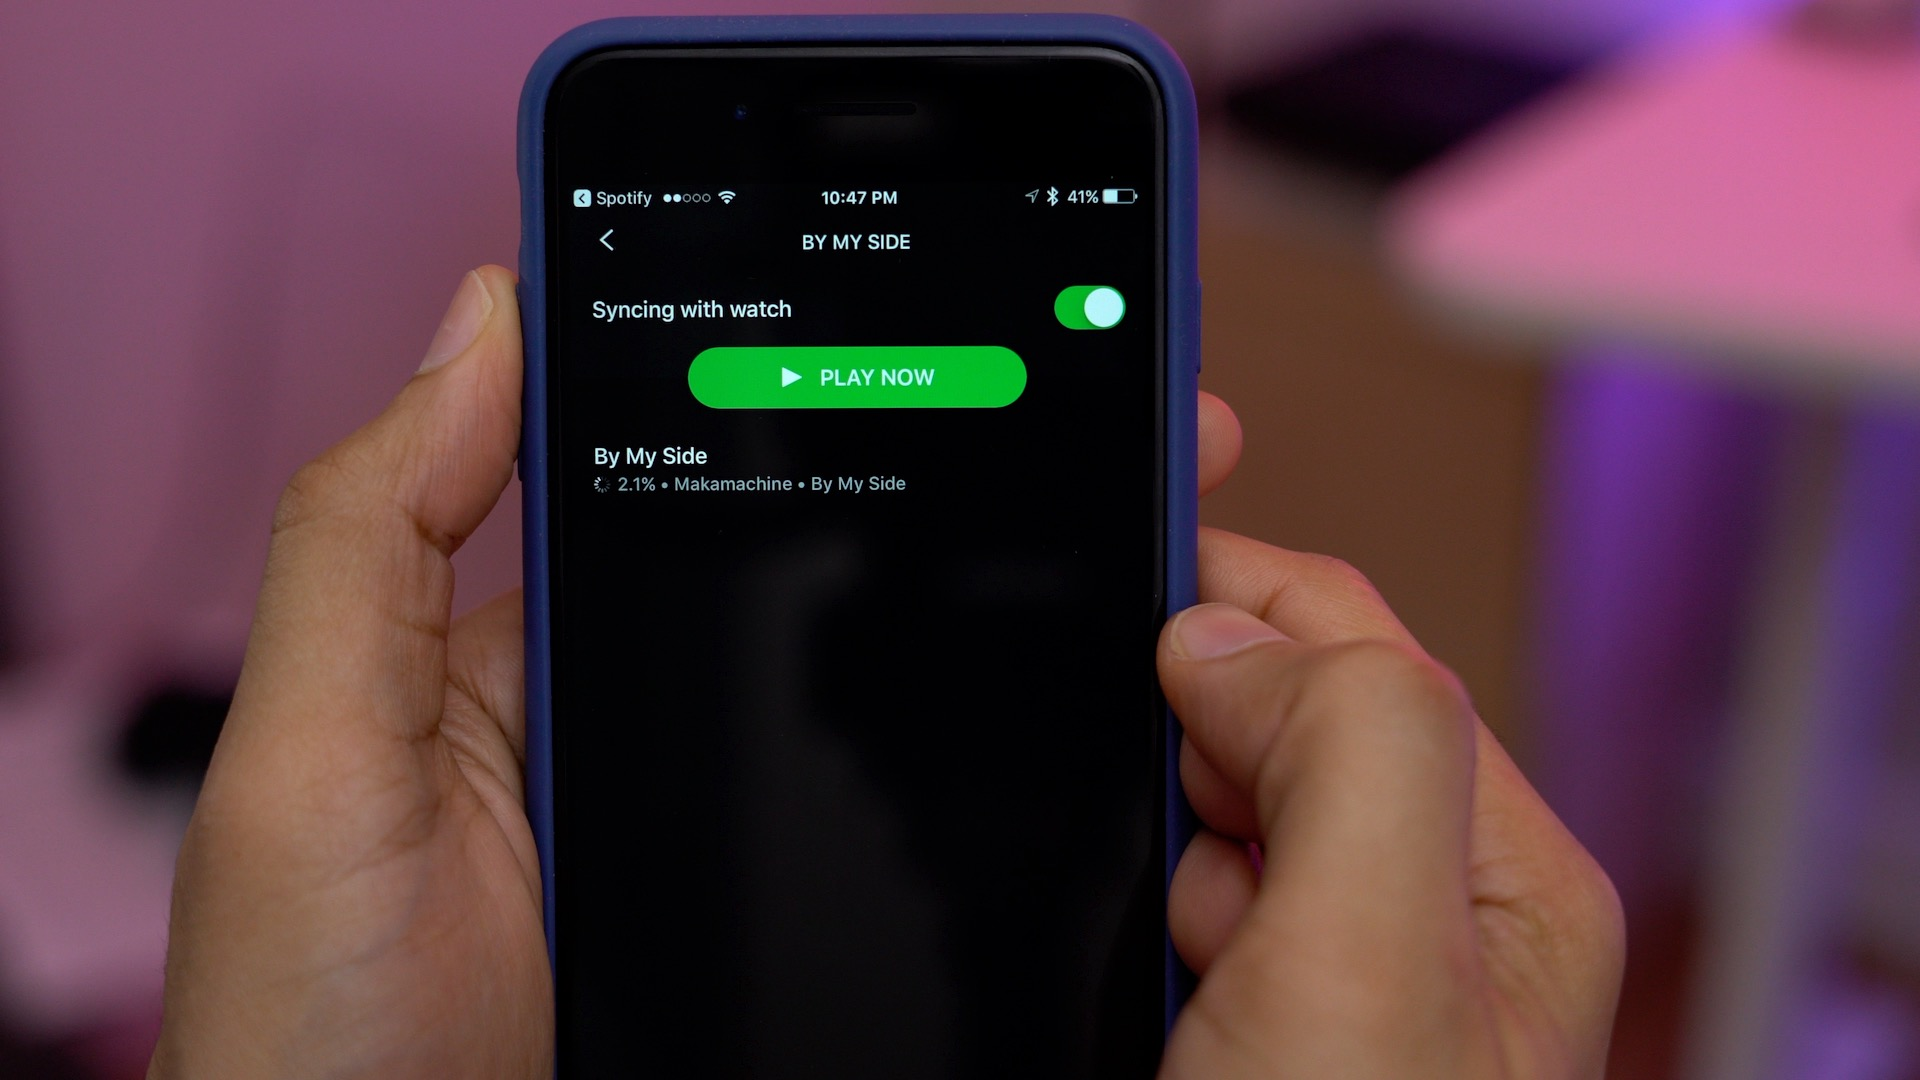 spotify-syncing-apple-watch-spotty-app